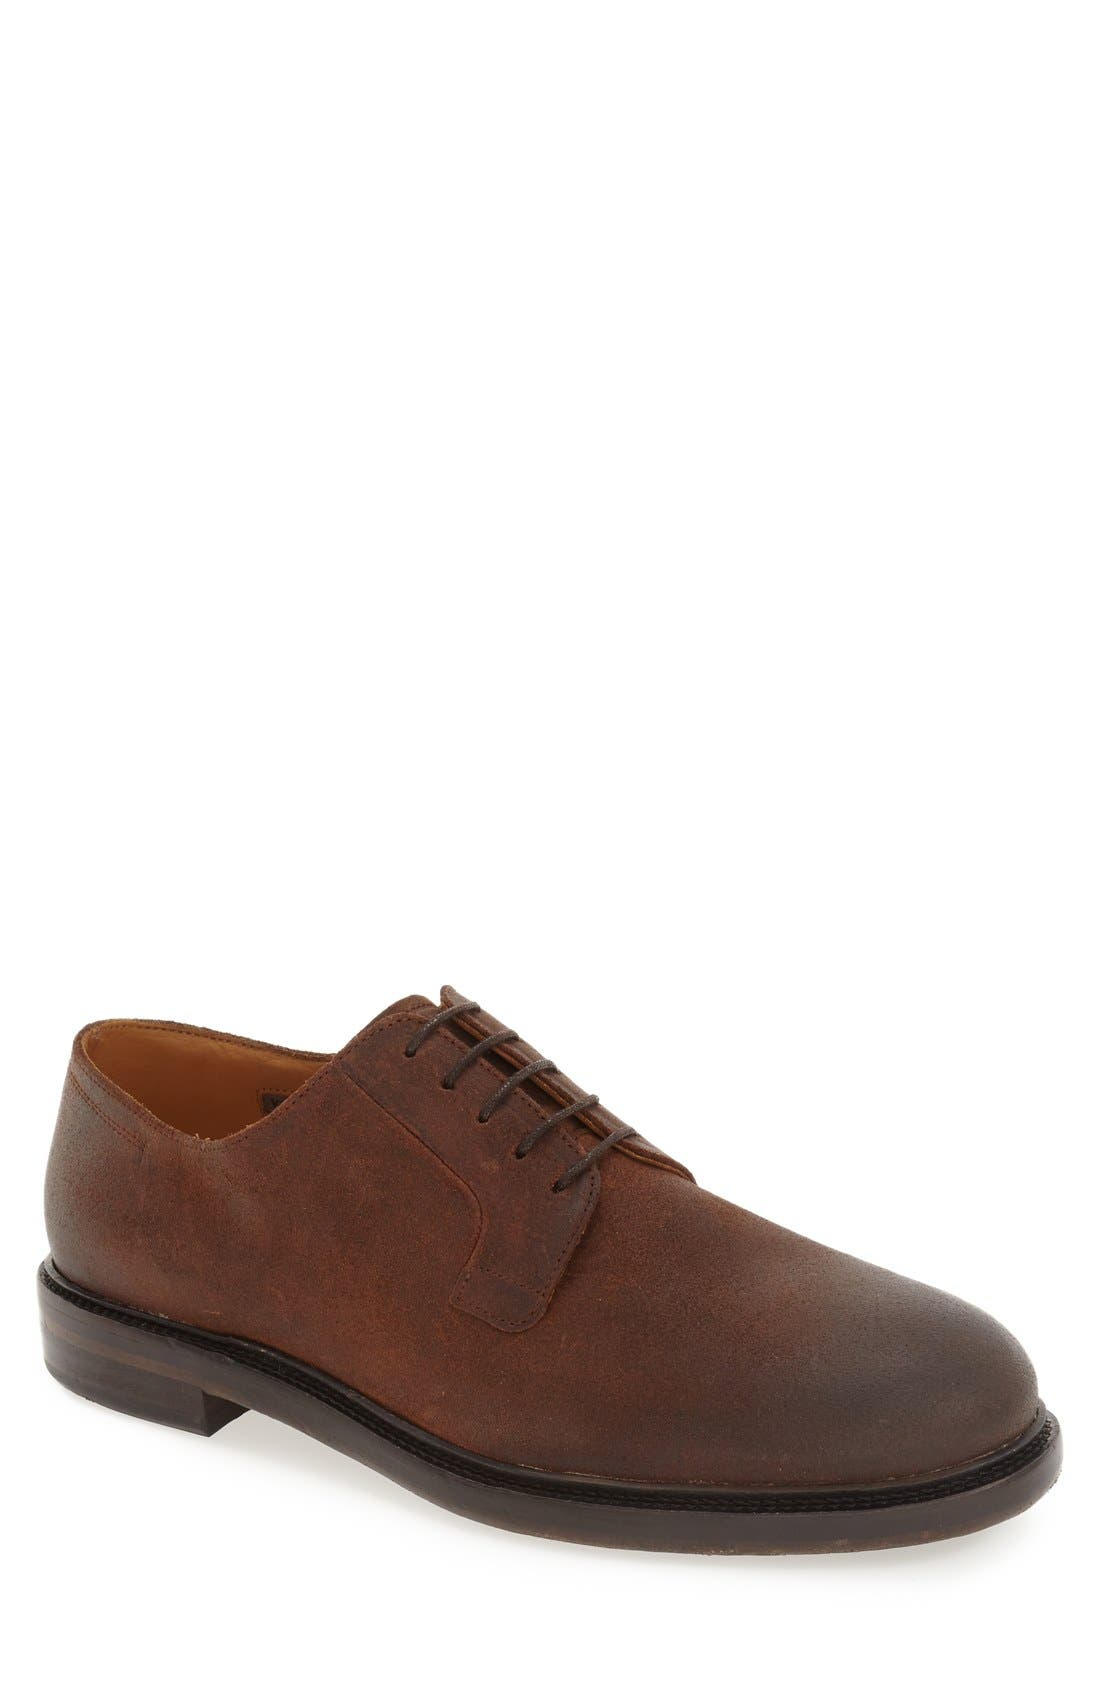 'Samtin' Plain Toe Blucher,                             Main thumbnail 2, color,